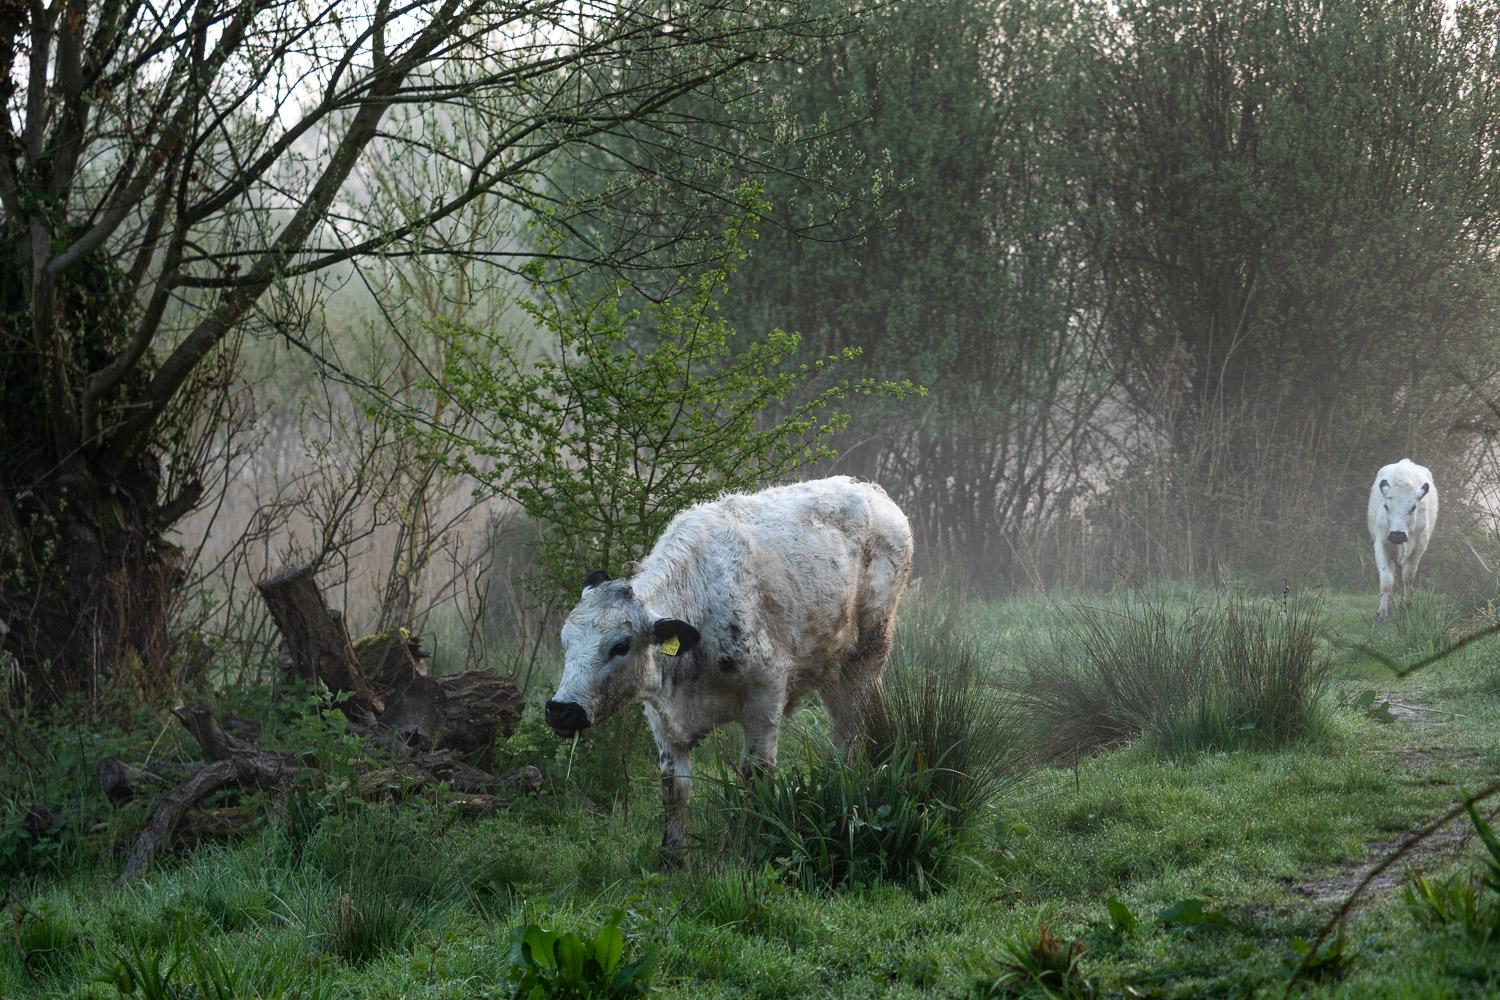 Wild Cattle, the image in our store that created all the fun!